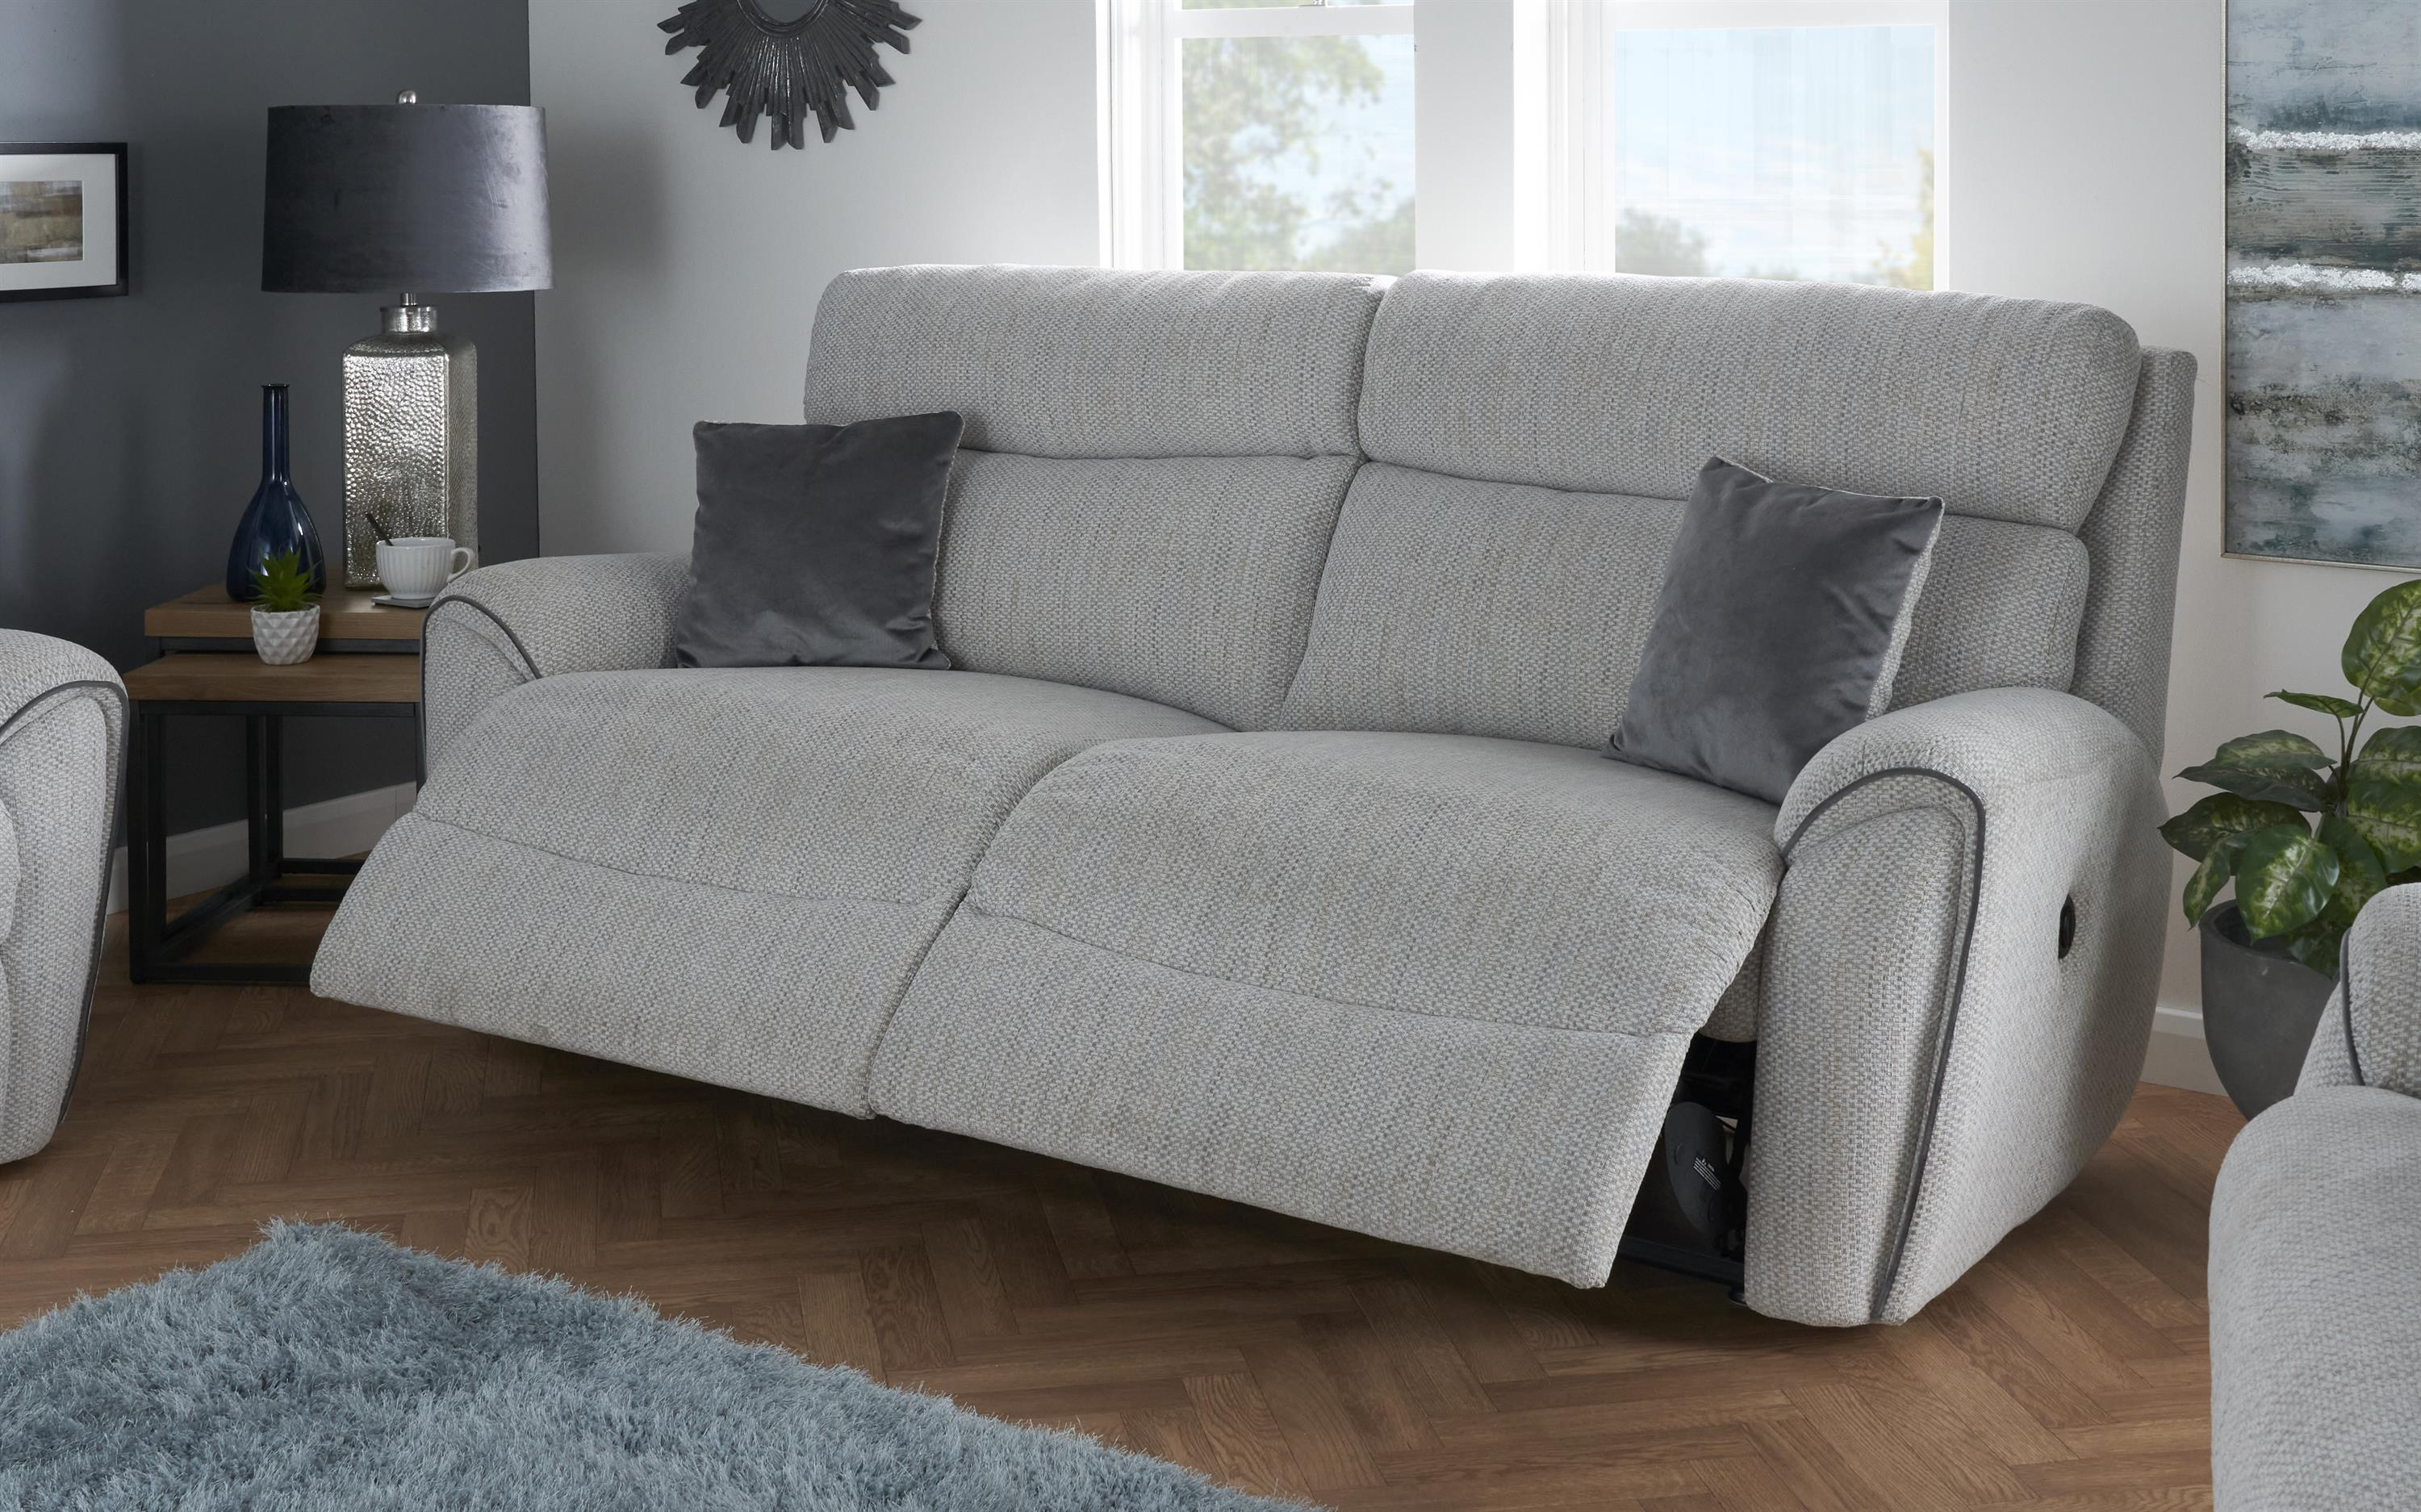 La-Z-Boy Pittsburgh 3 Seater Power Recliner Sofa